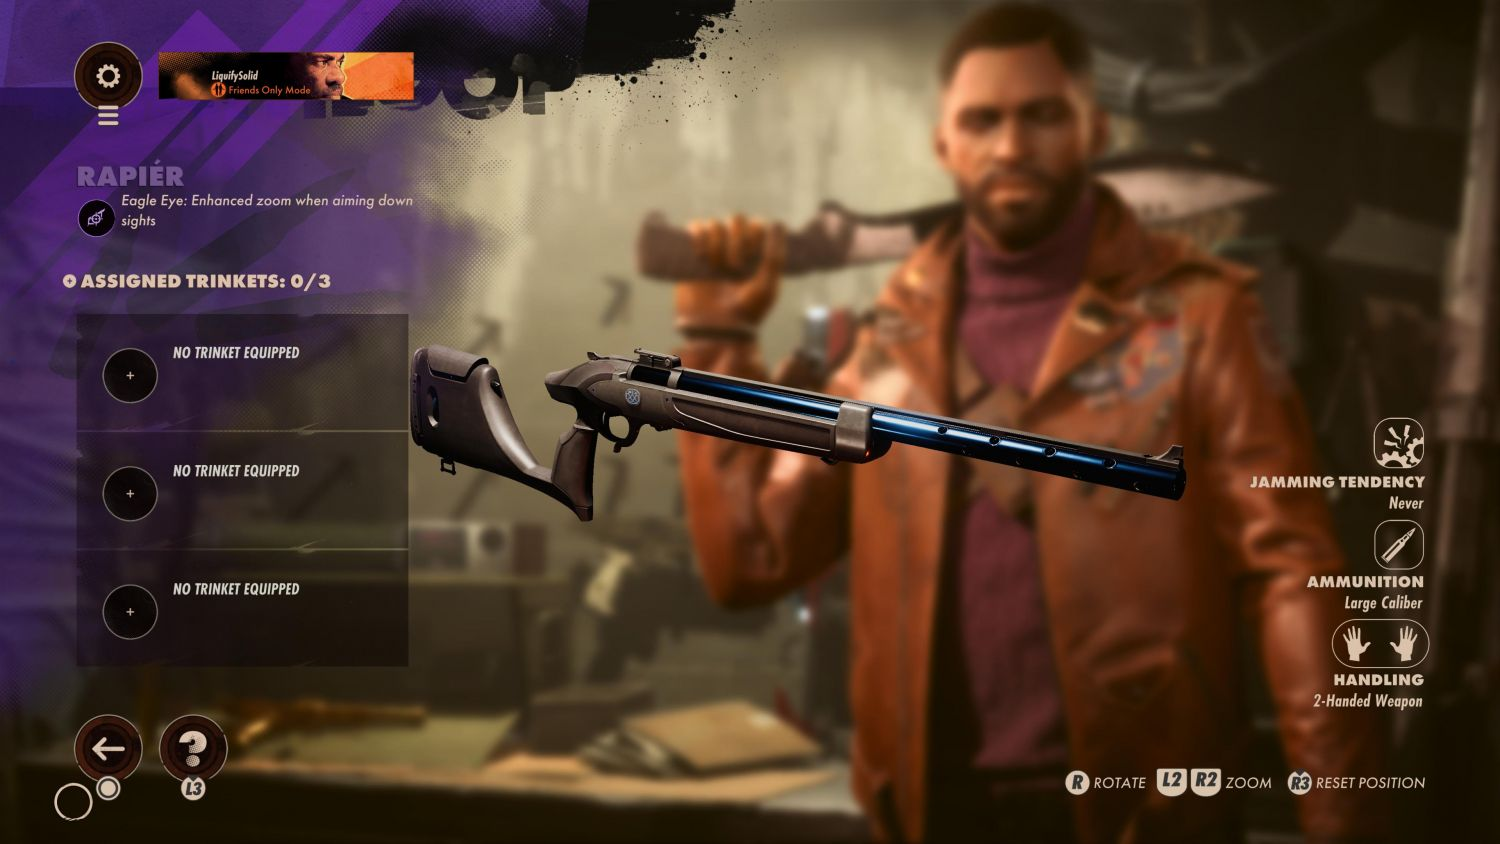 The Best Weapons And Slabs In Deathloop You Need To Know - The Rapier